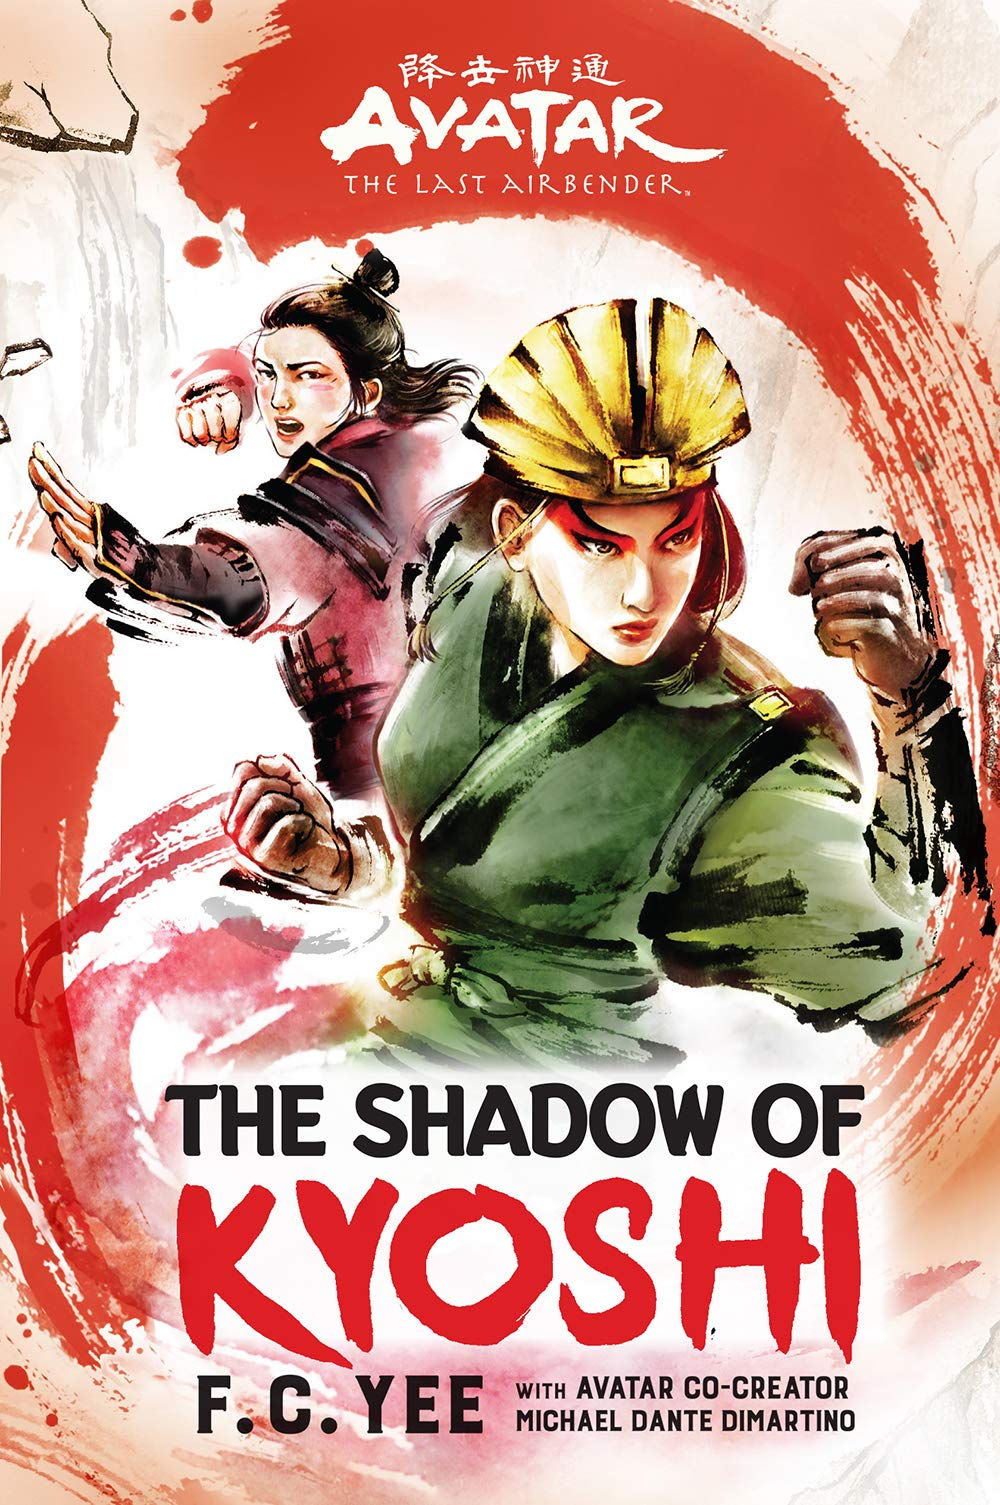 Avatar, The Last Airbender: The Shadow of Kyoshi The Kyoshi Novels Book 2:  Amazon.ca: Yee, F. C.: Books